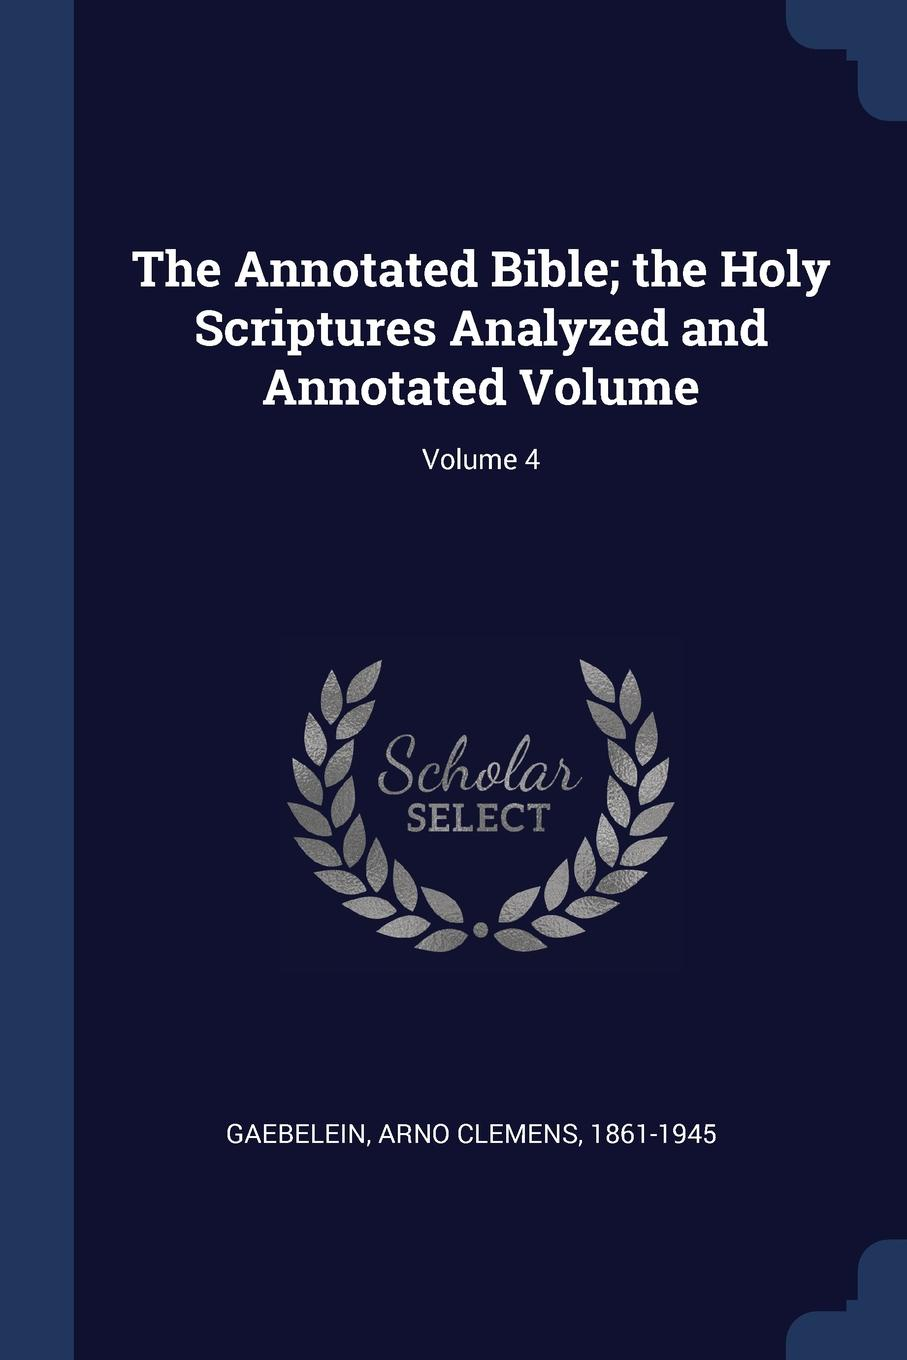 The Annotated Bible; the Holy Scriptures Analyzed and Annotated Volume; Volume 4